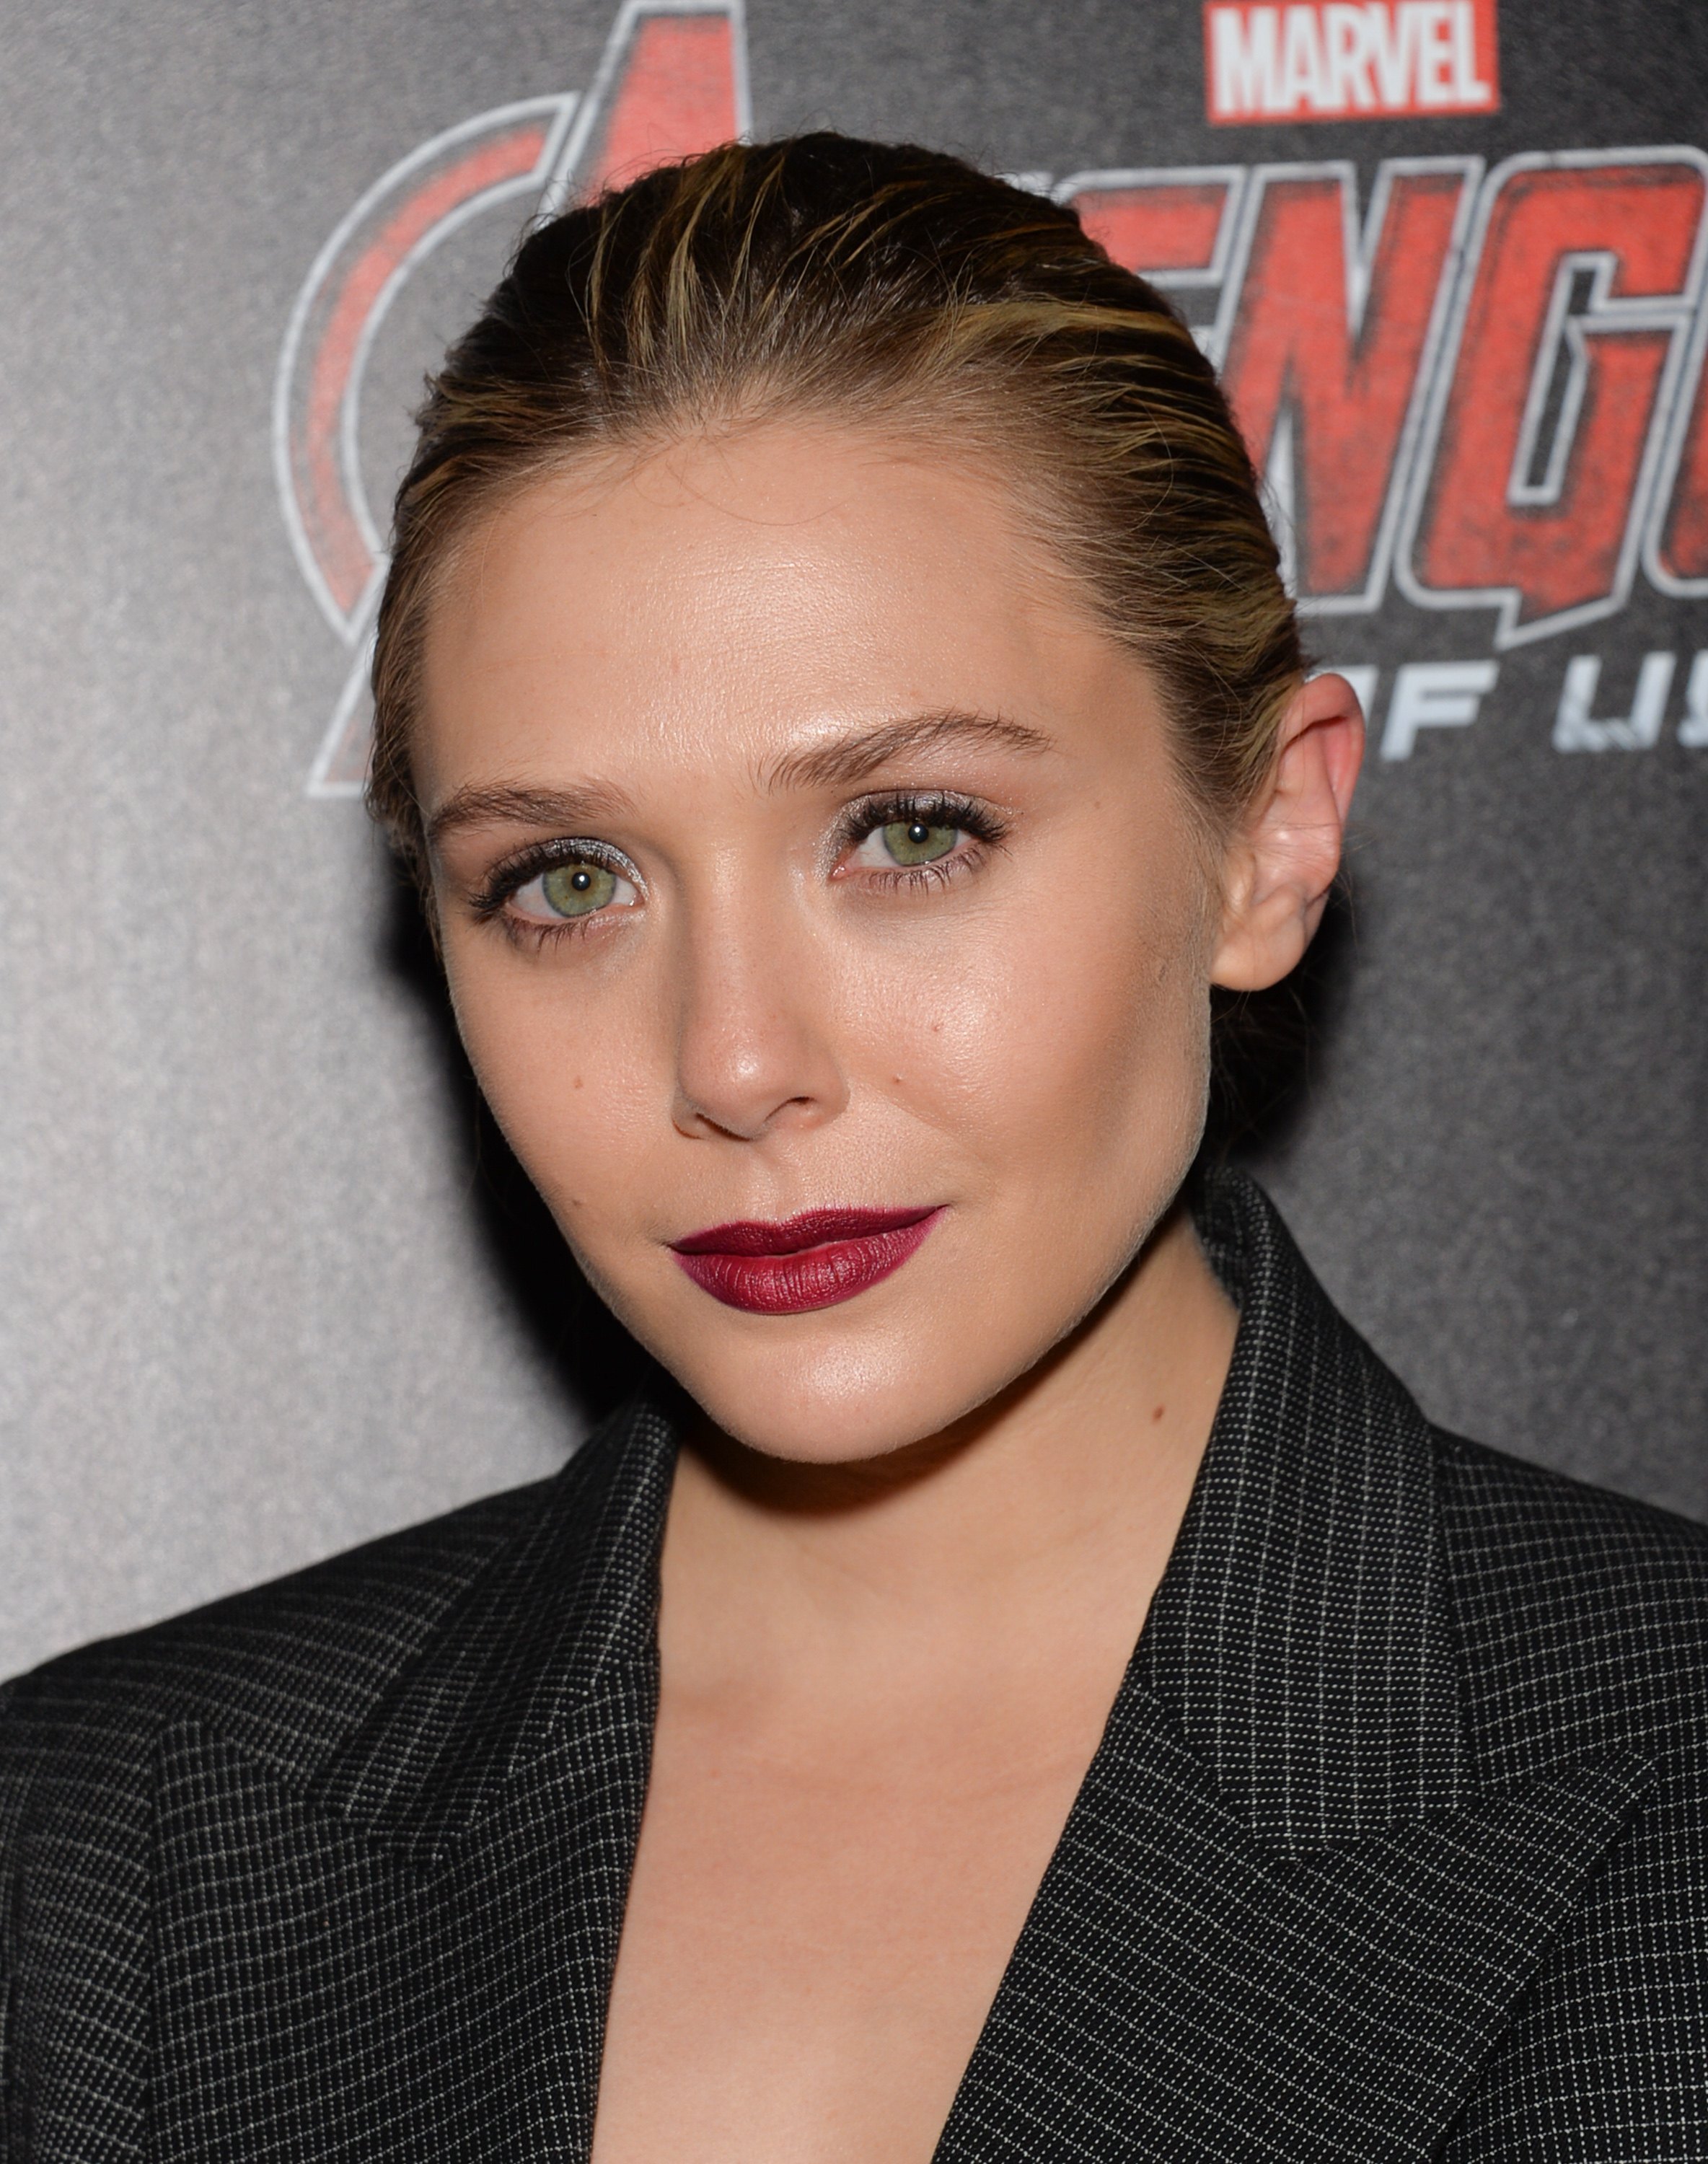 Actress Elizabeth Olsen attends a special screening of Marvel's  Avengers: Age of Ultron  in New York City on April, 28, 2015.